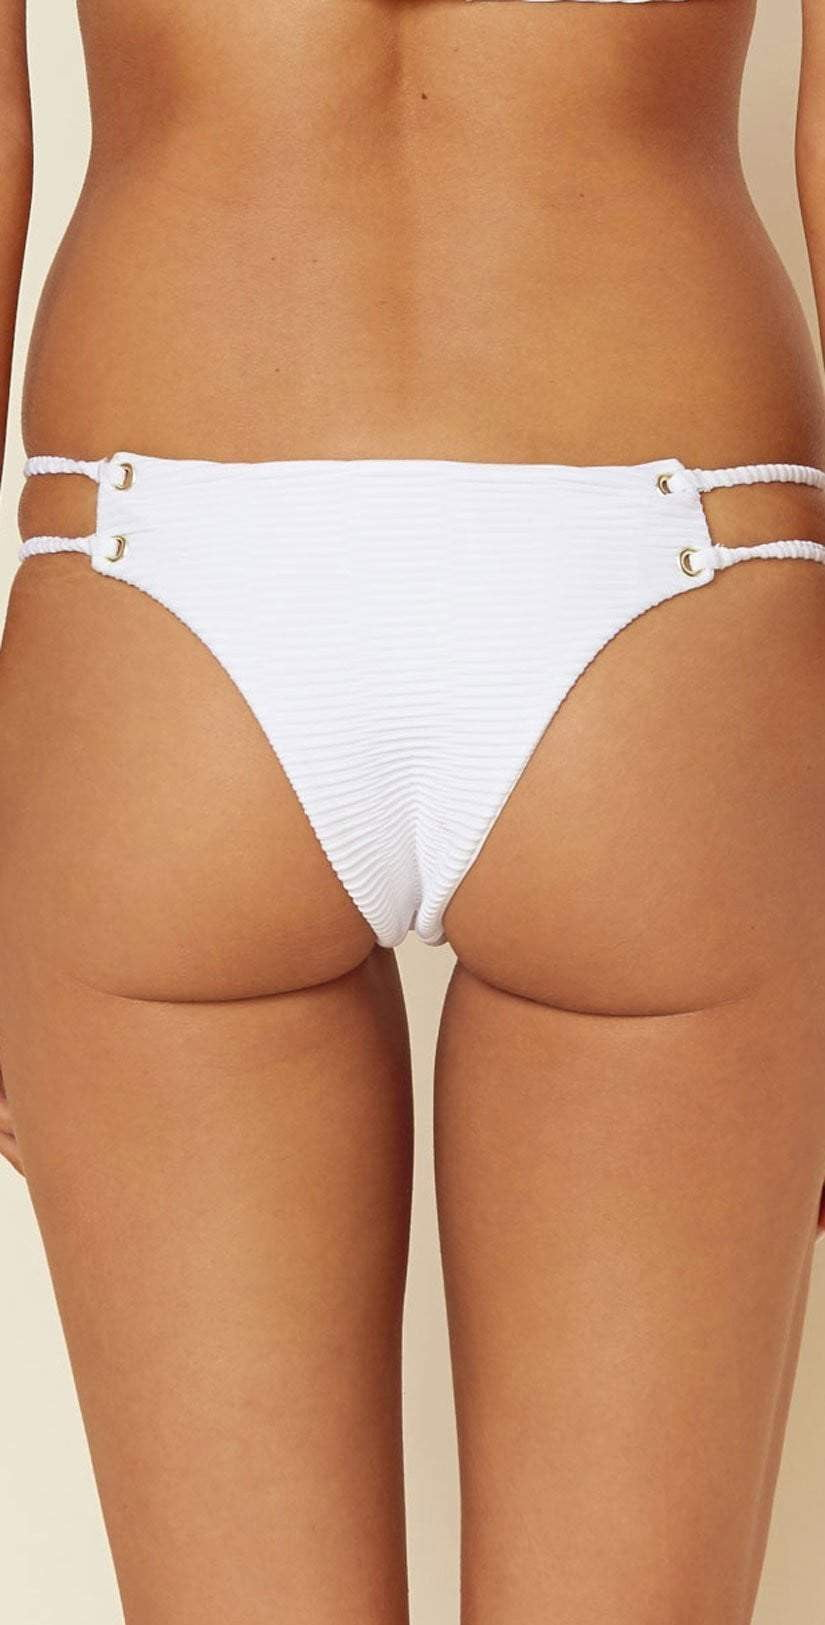 Blue Life Roped Up Skimpy Jacquard Bottom In White 390-9354-WHT: